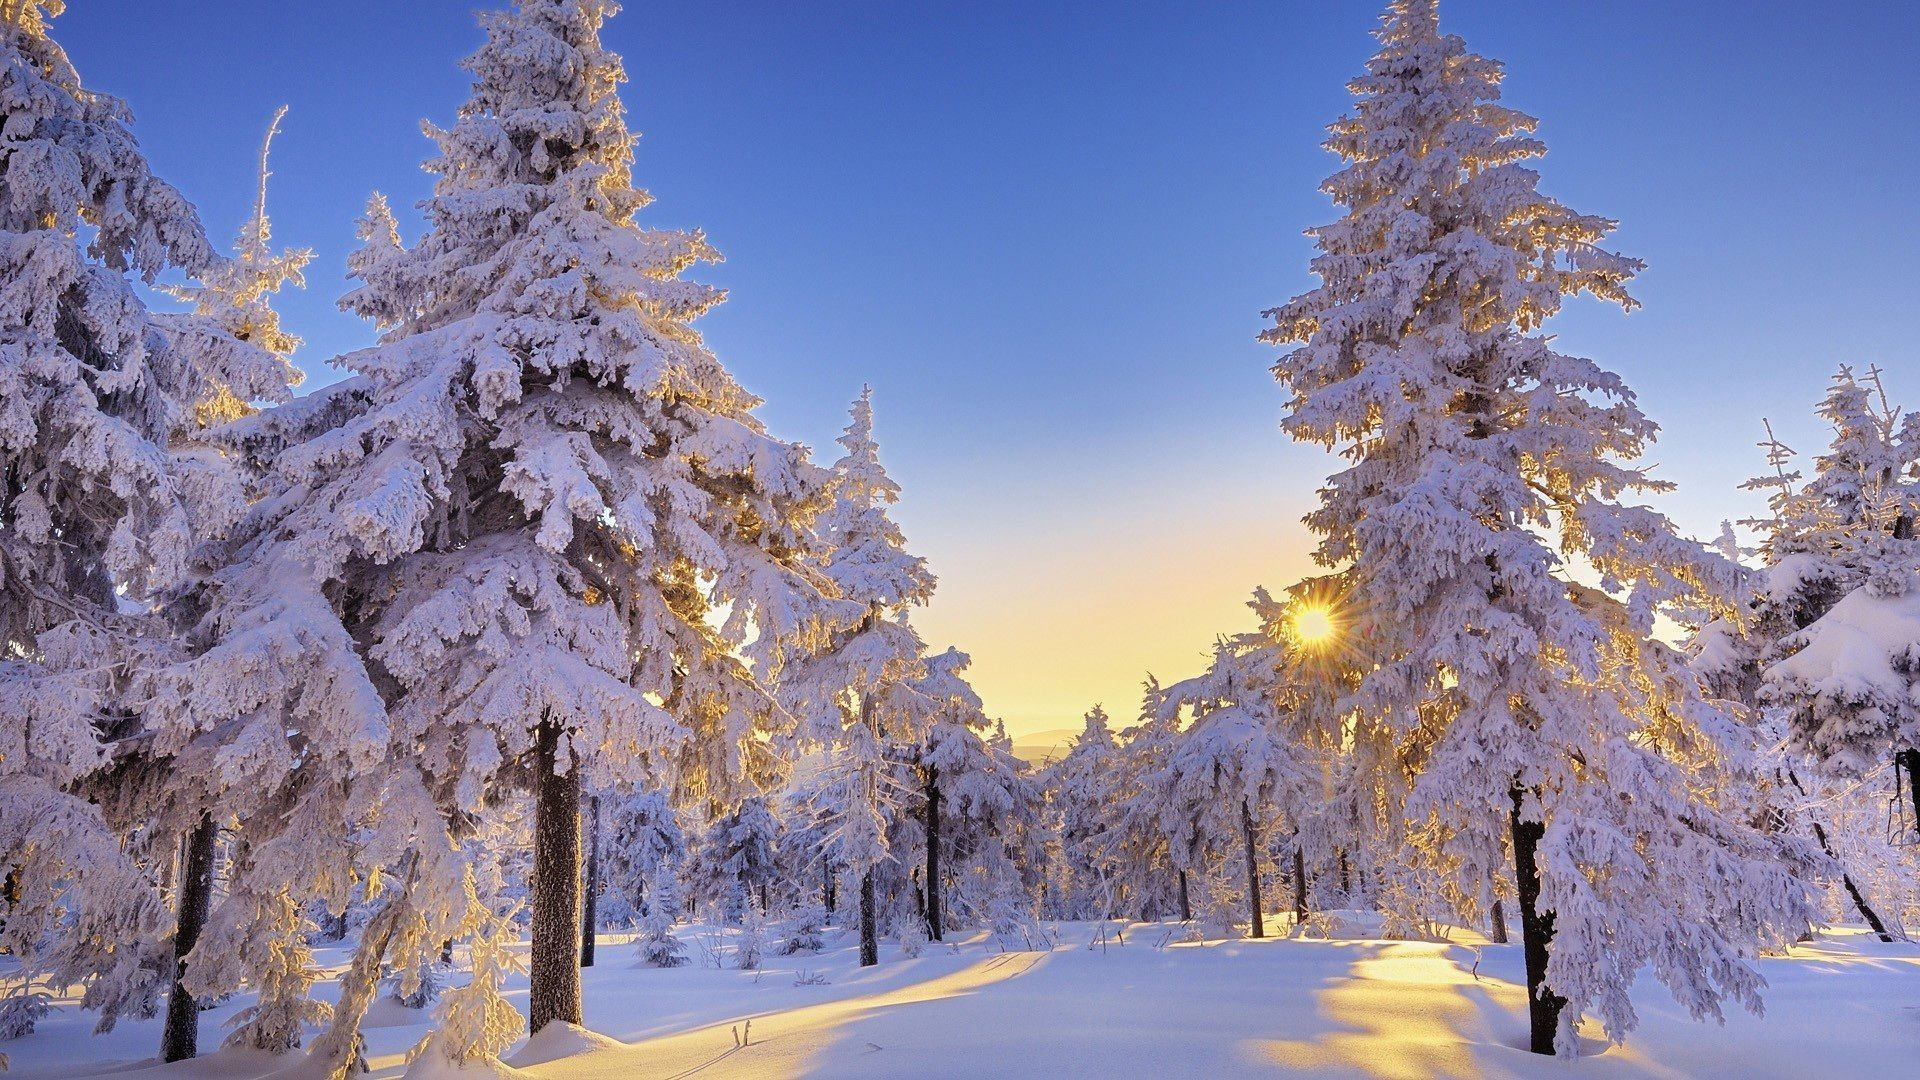 Winter Scene Wallpaper For Computer Posted By Zoey Anderson